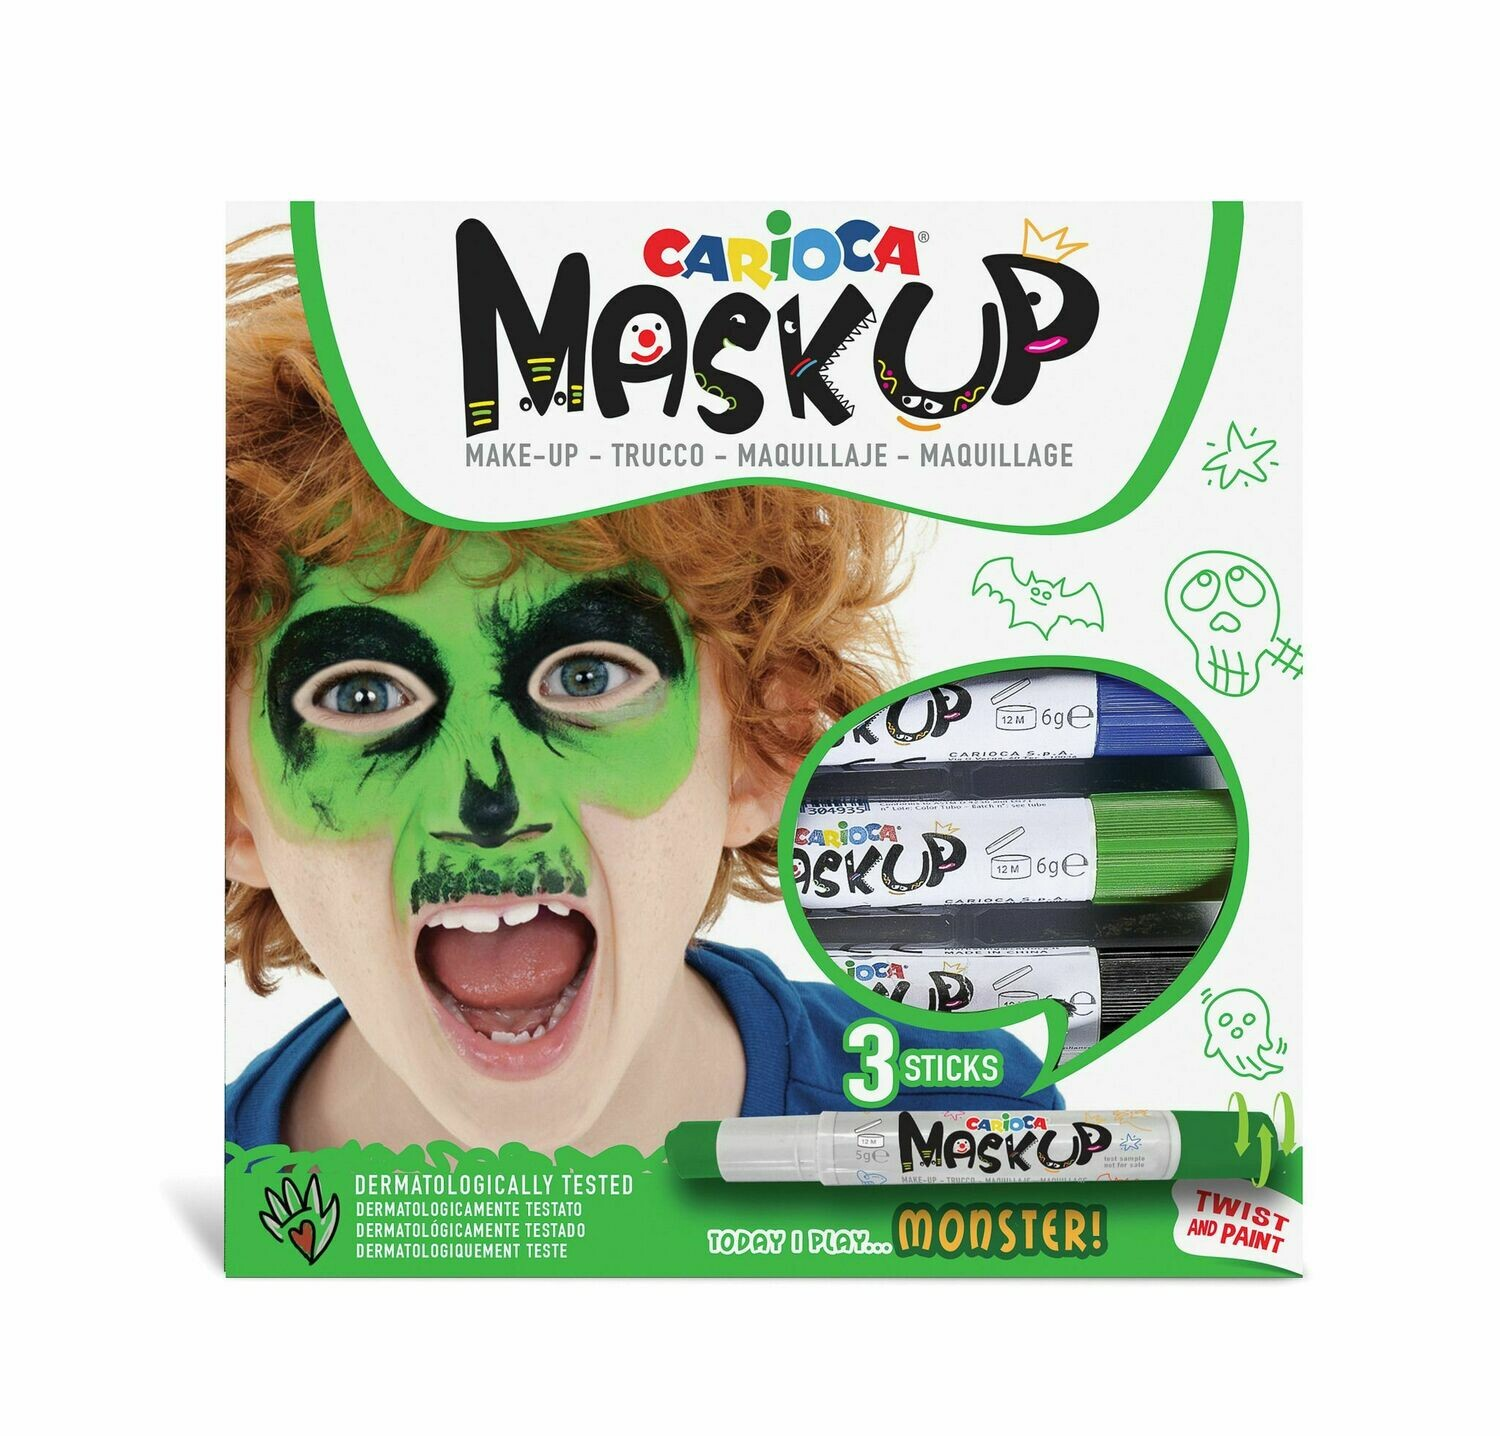 MASK UP TRUCCO BAMBINI CARIOCA MONSTER